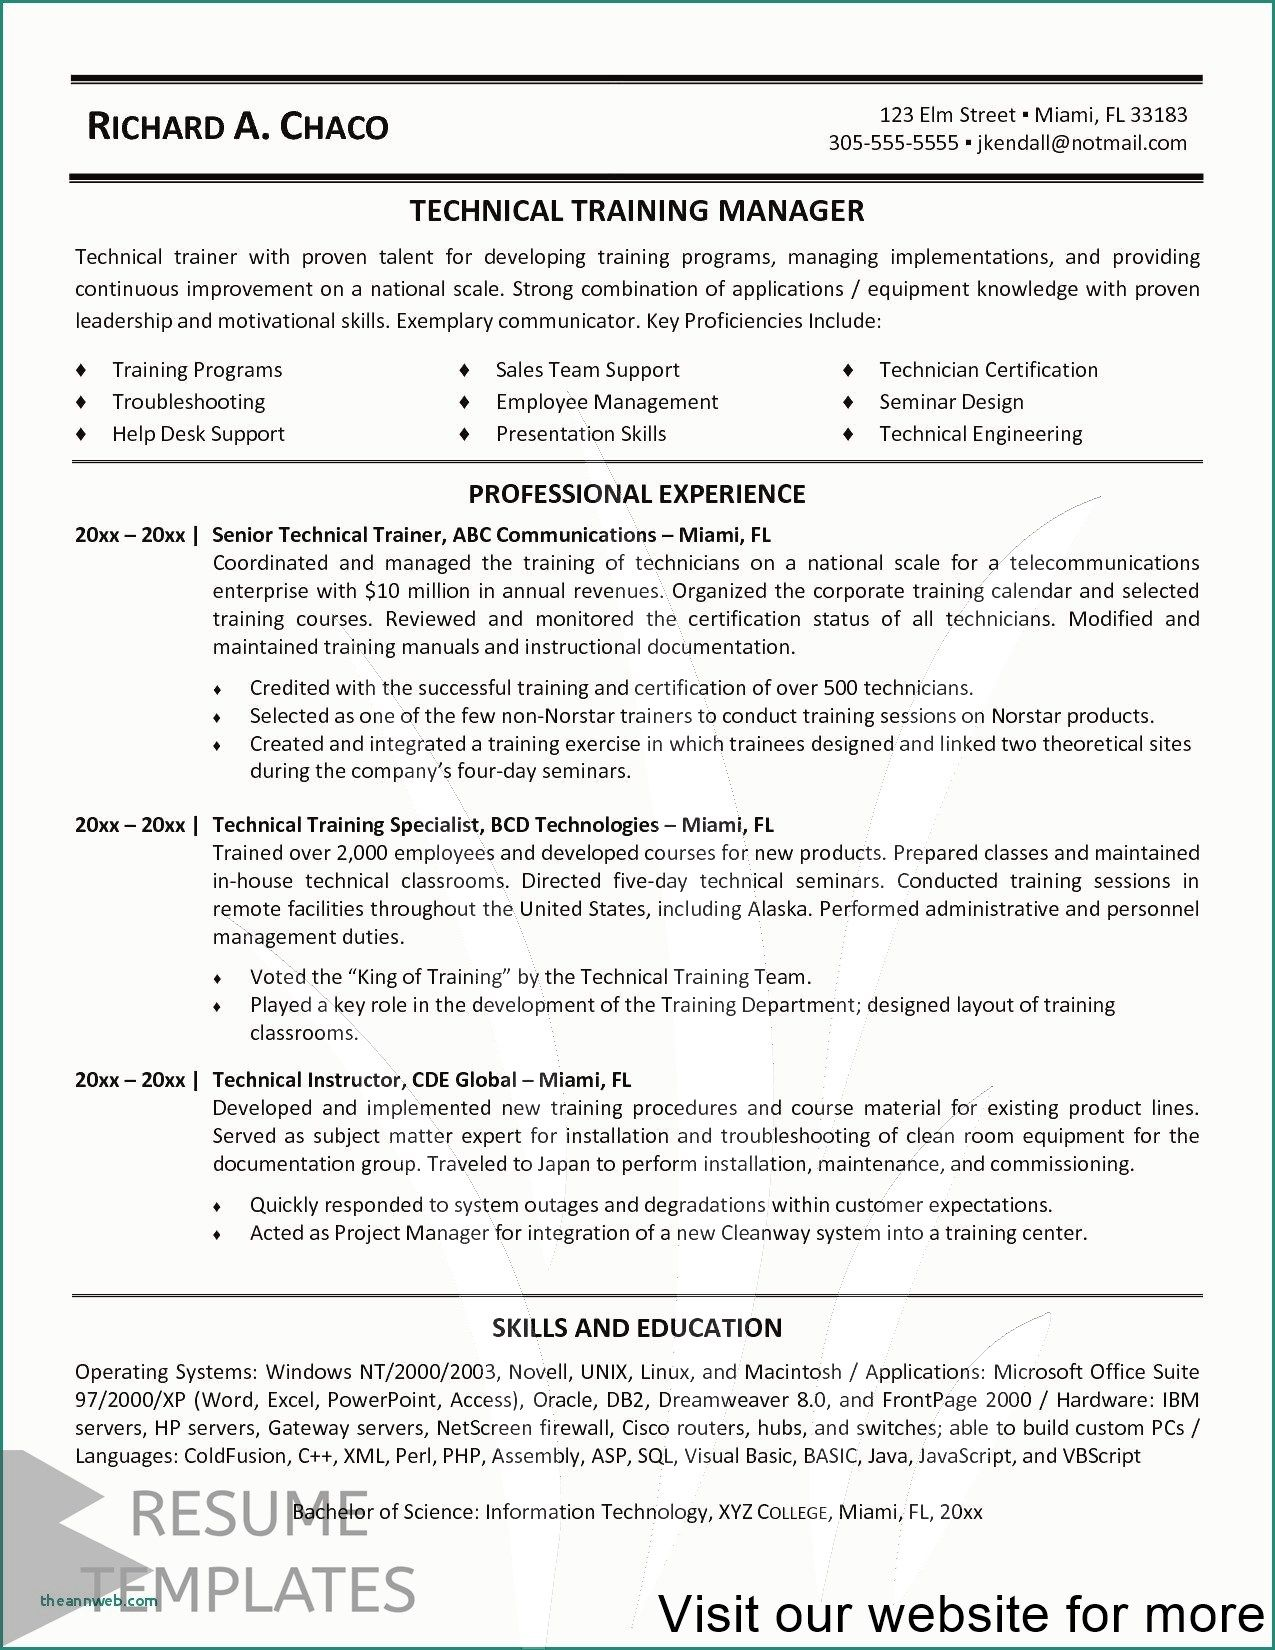 resume examples simple Professional in 2020 (With images